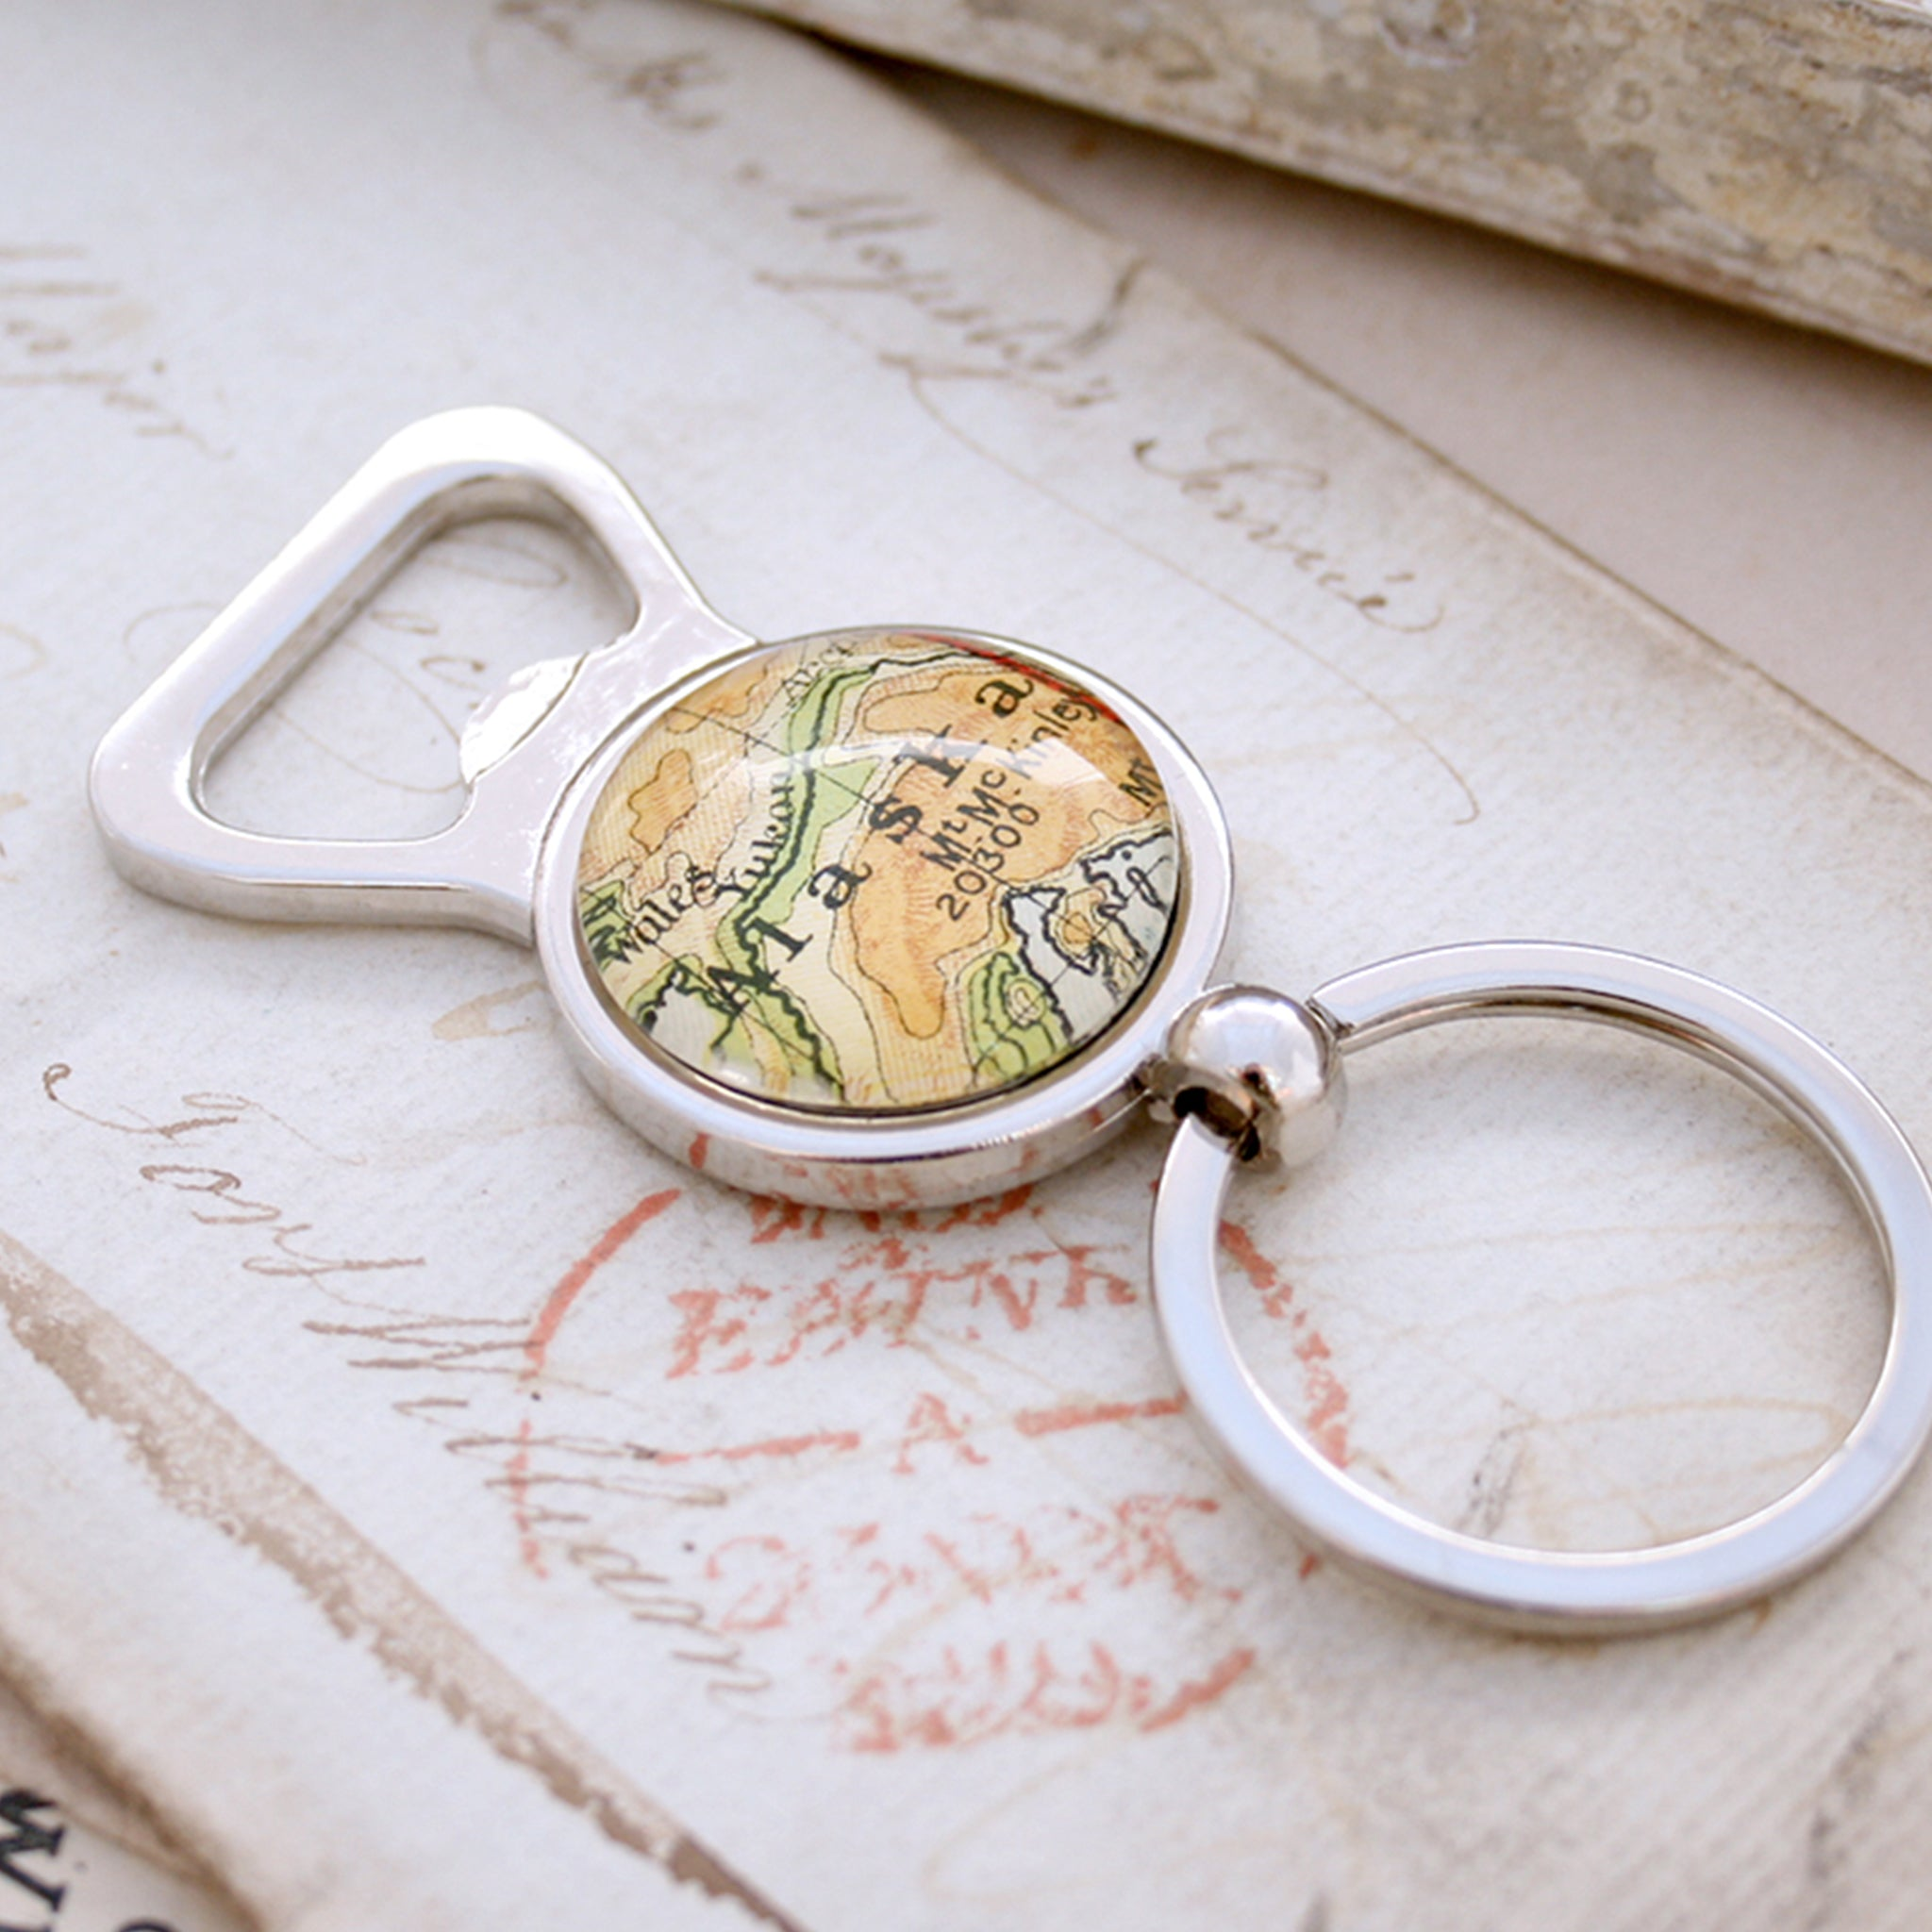 Personalised Bottle Opener with map of Alaska featured